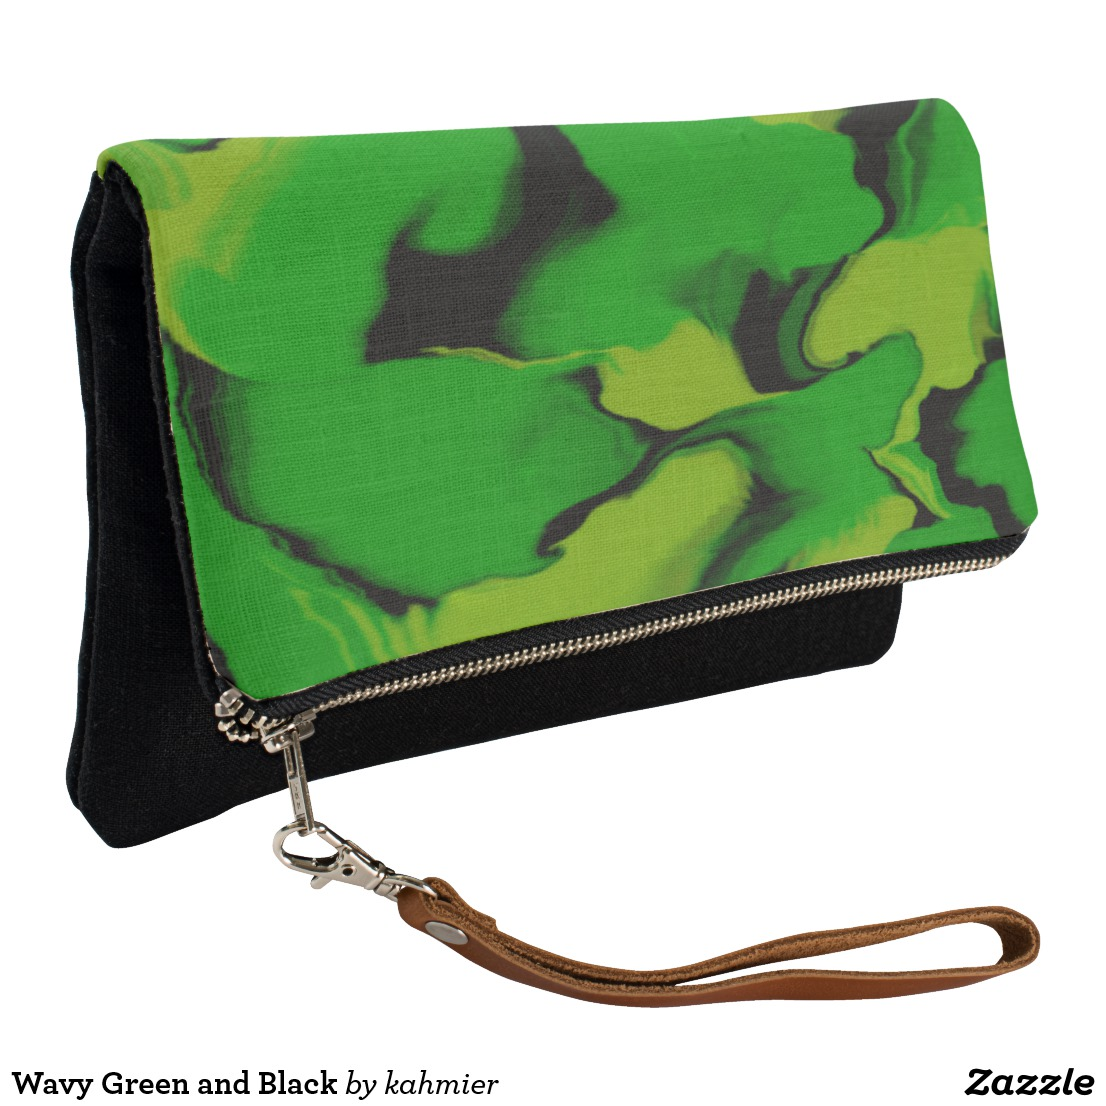 Wavy Green and Black Clutch